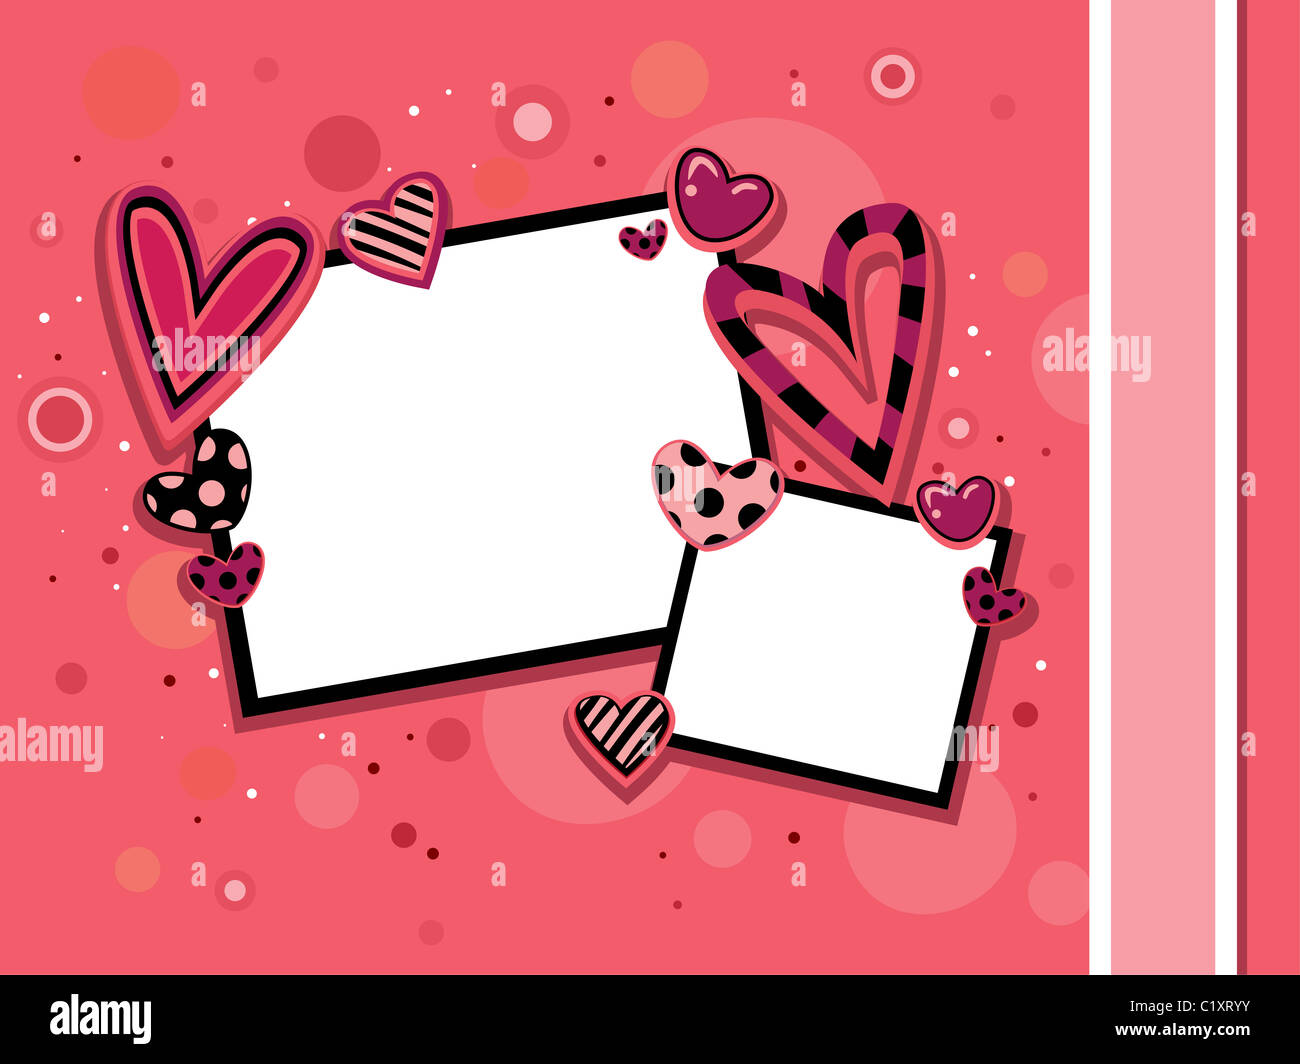 Background Backdrop Design Elements Romance Frame Pink Cute Girly ...